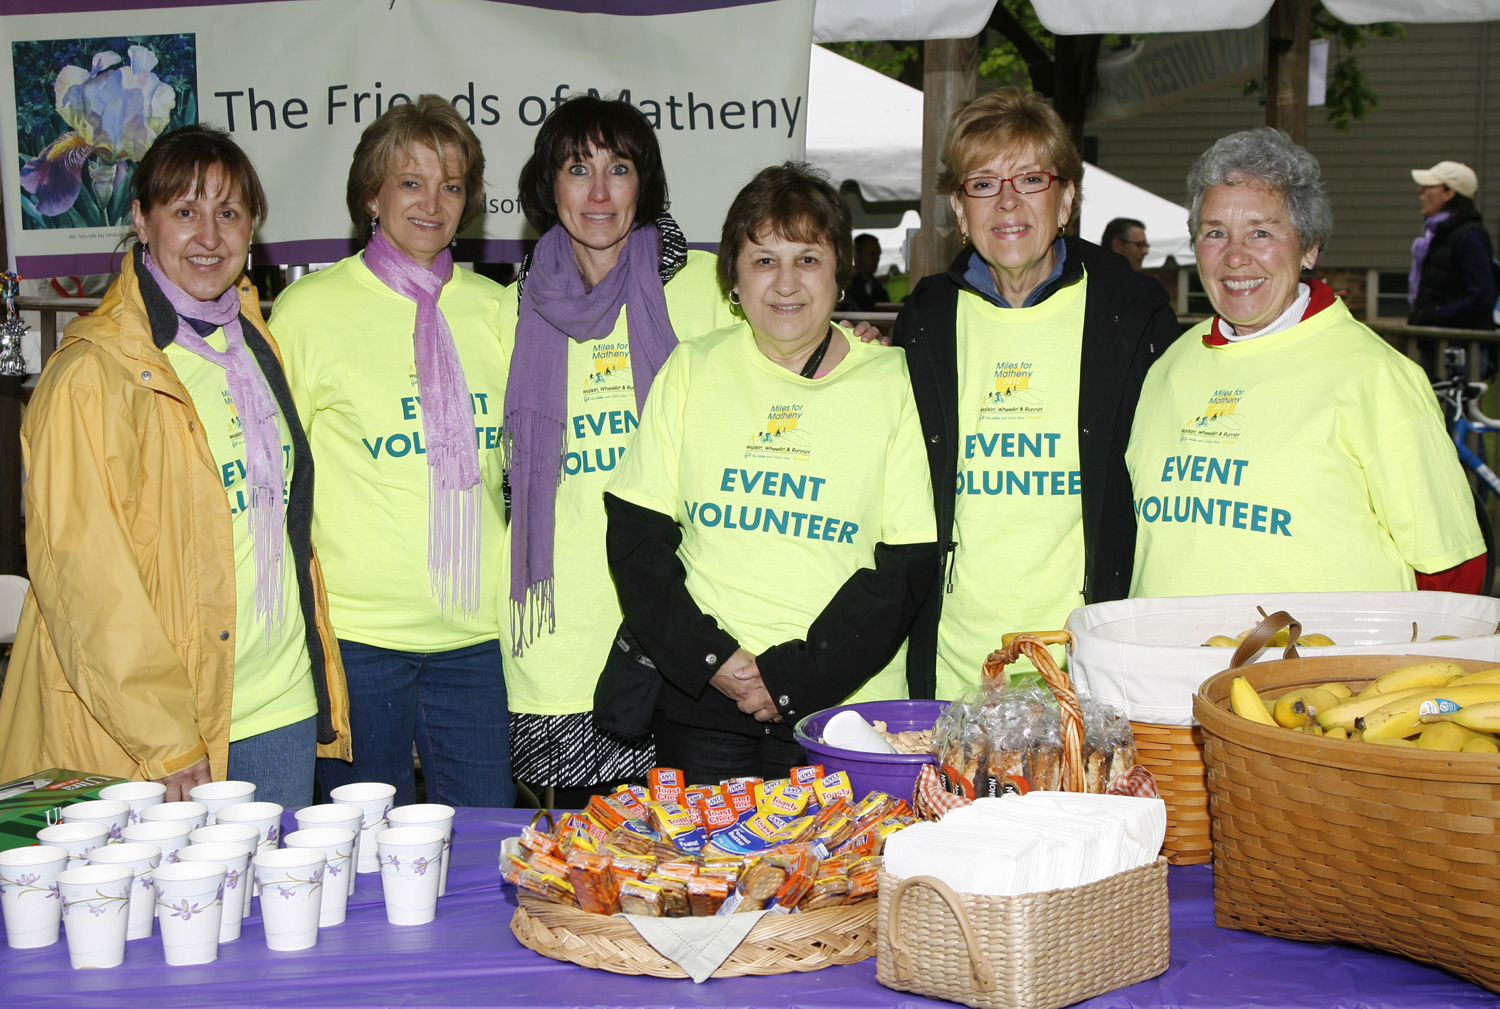 Miles for Matheny Volunteers